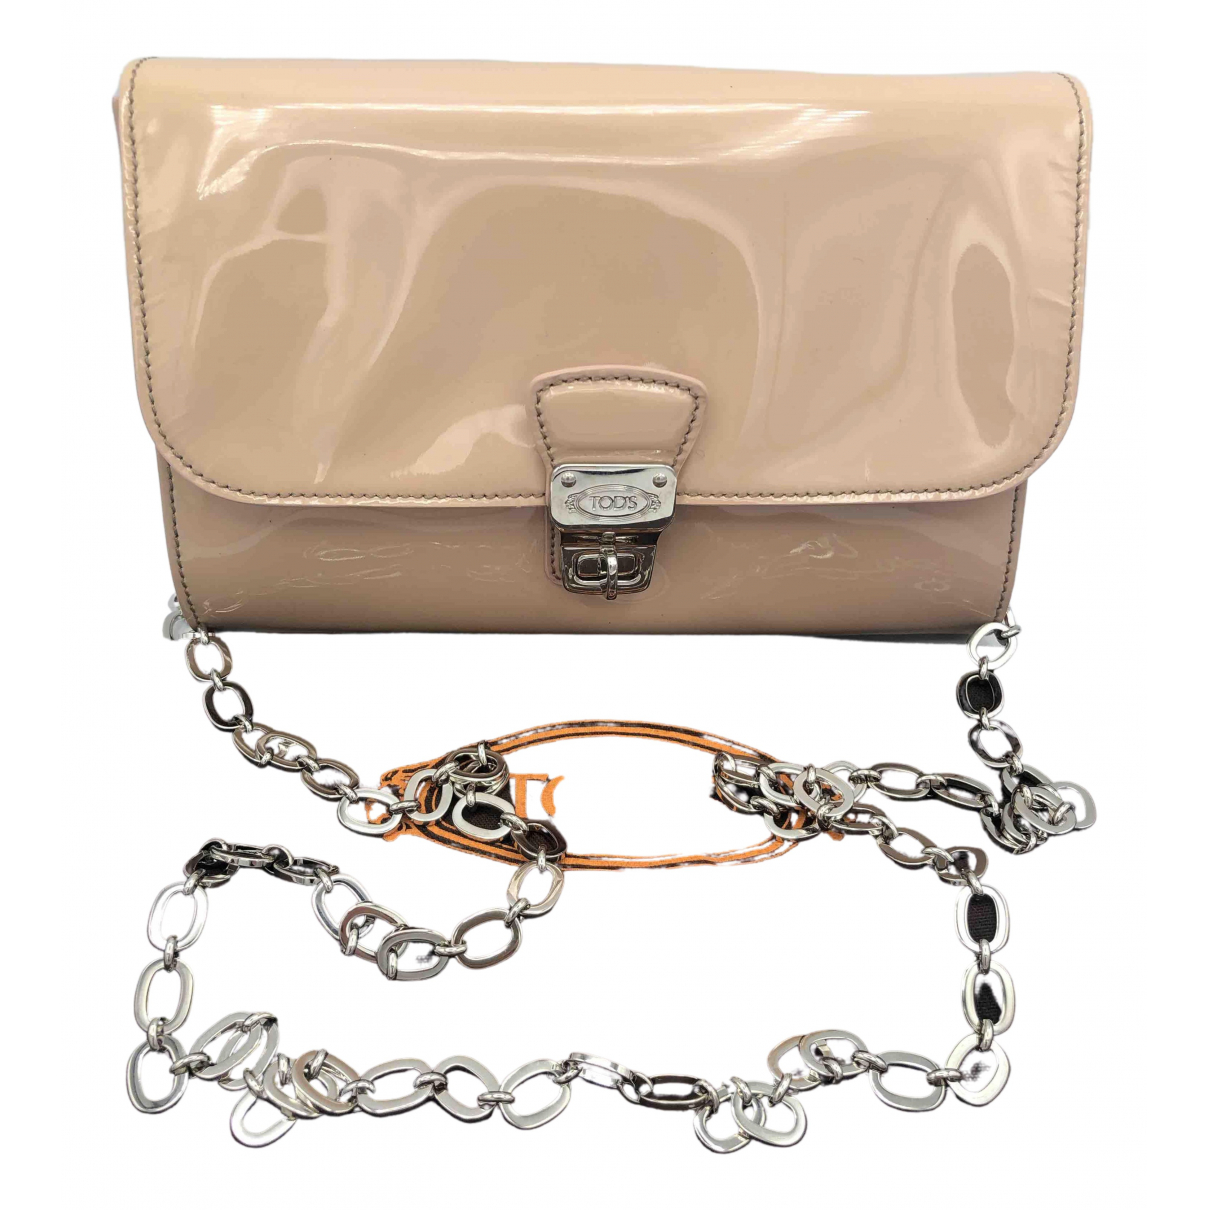 Tod's \N Beige Patent leather Clutch bag for Women \N